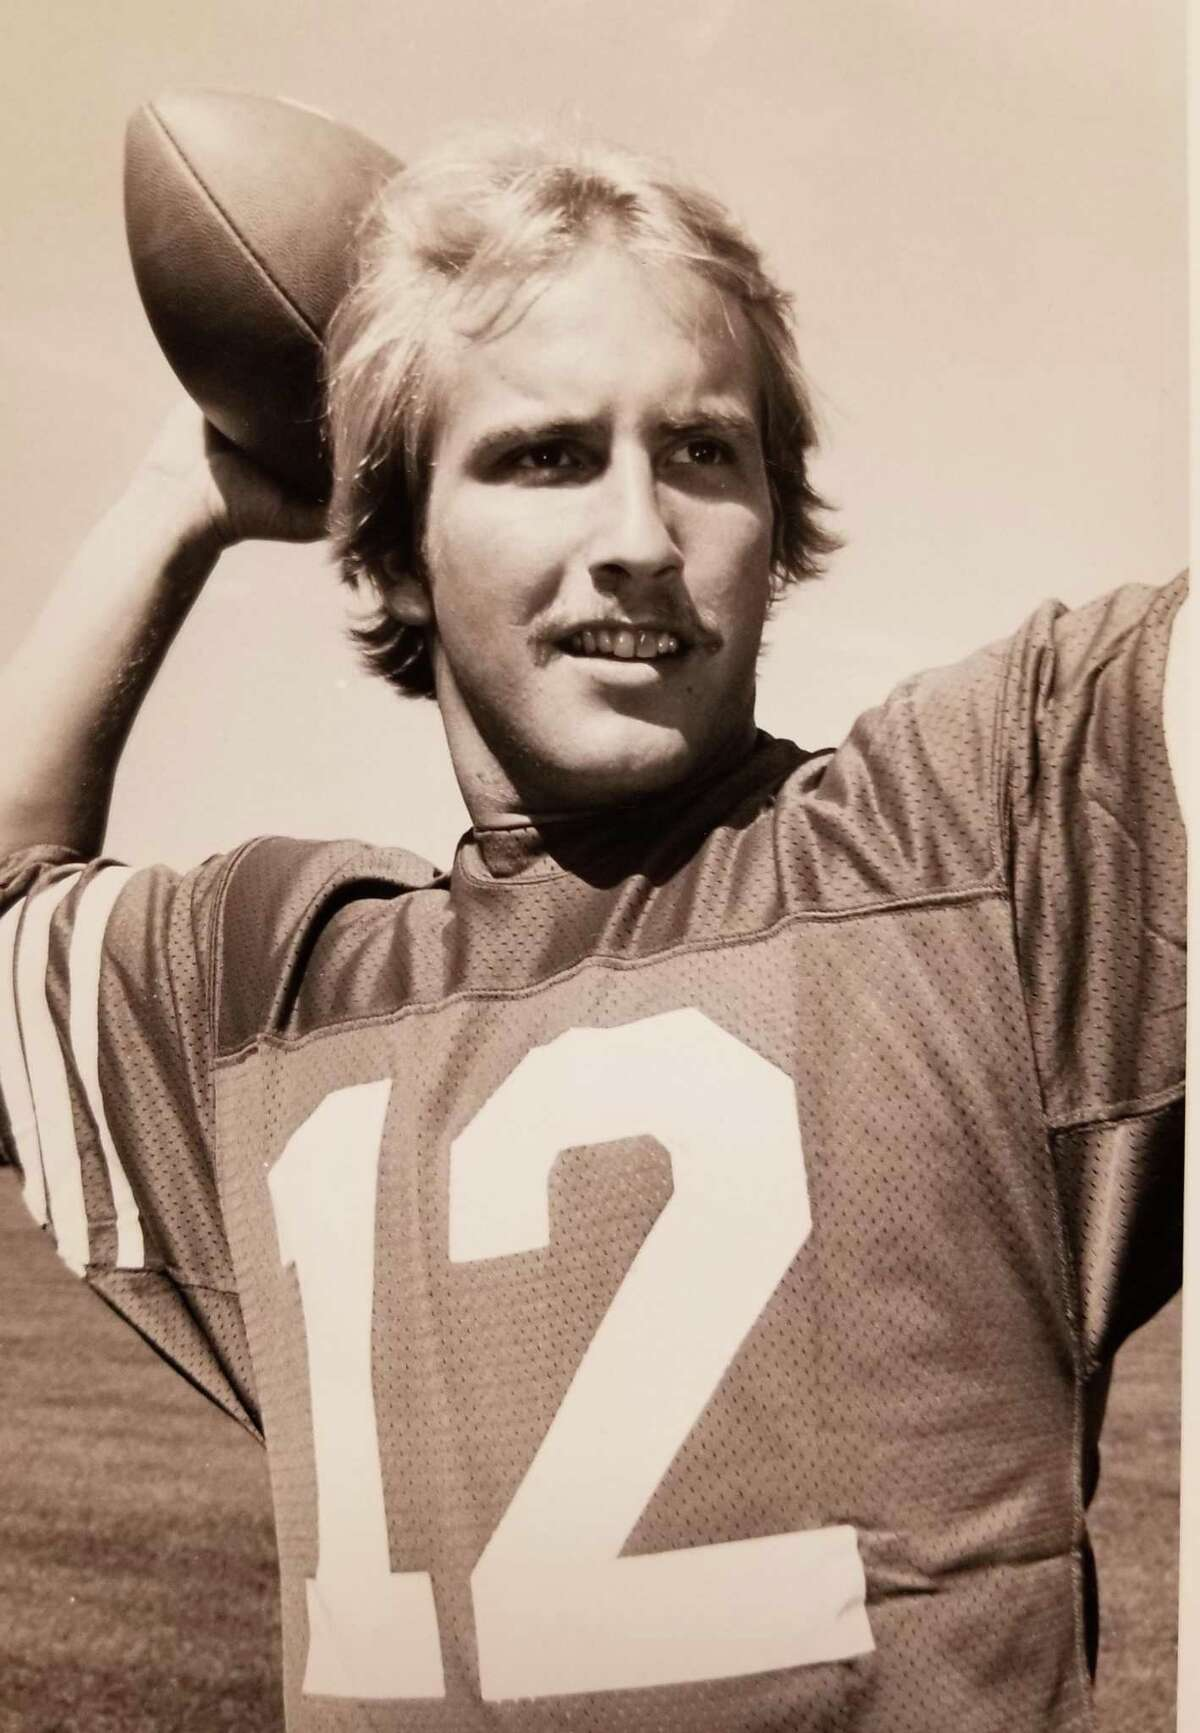 Ken Sweitzer was UConn's best player during its rivalry with Yale in the early 1980s.